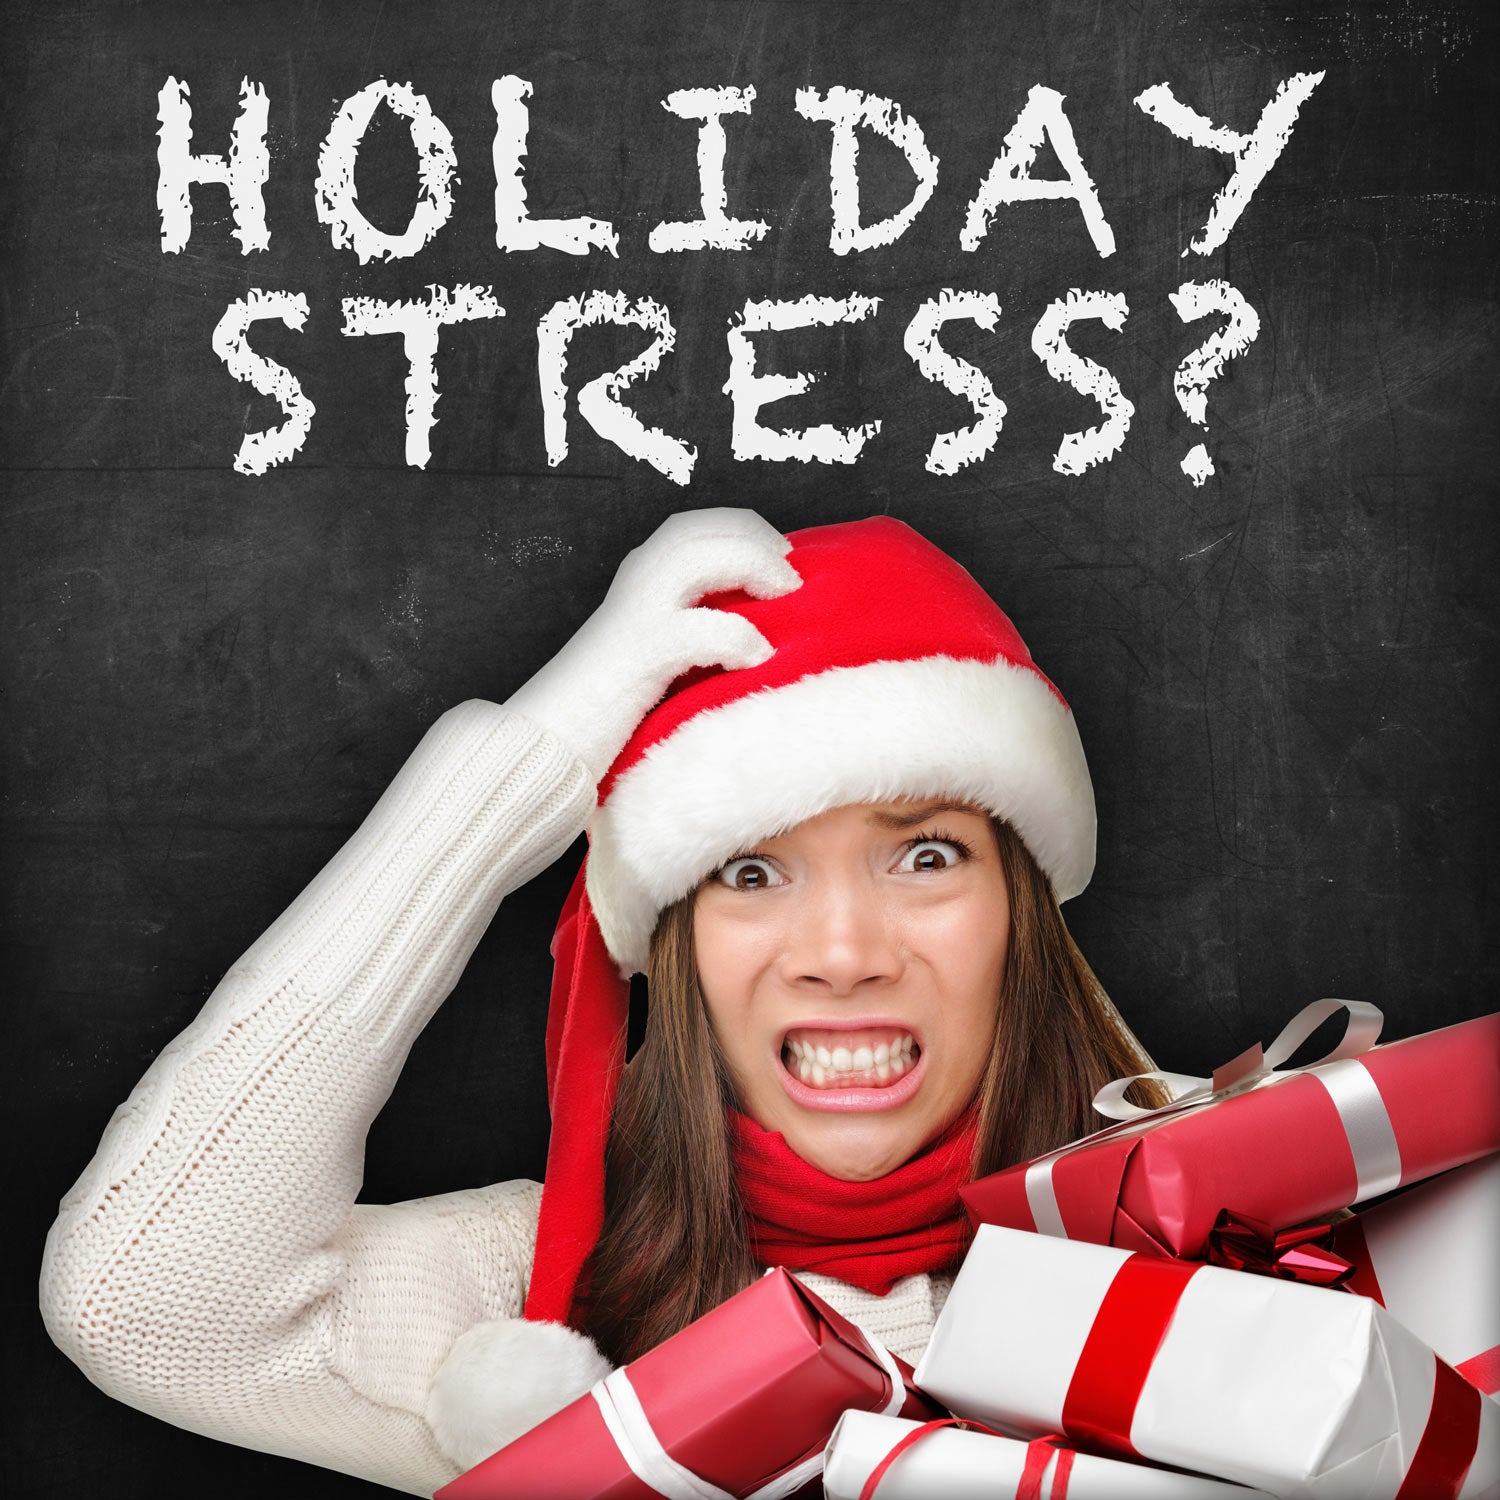 Prosourcefit Blog - Surprising Techniques to De-Stress Your Body & Mind During the Holidays